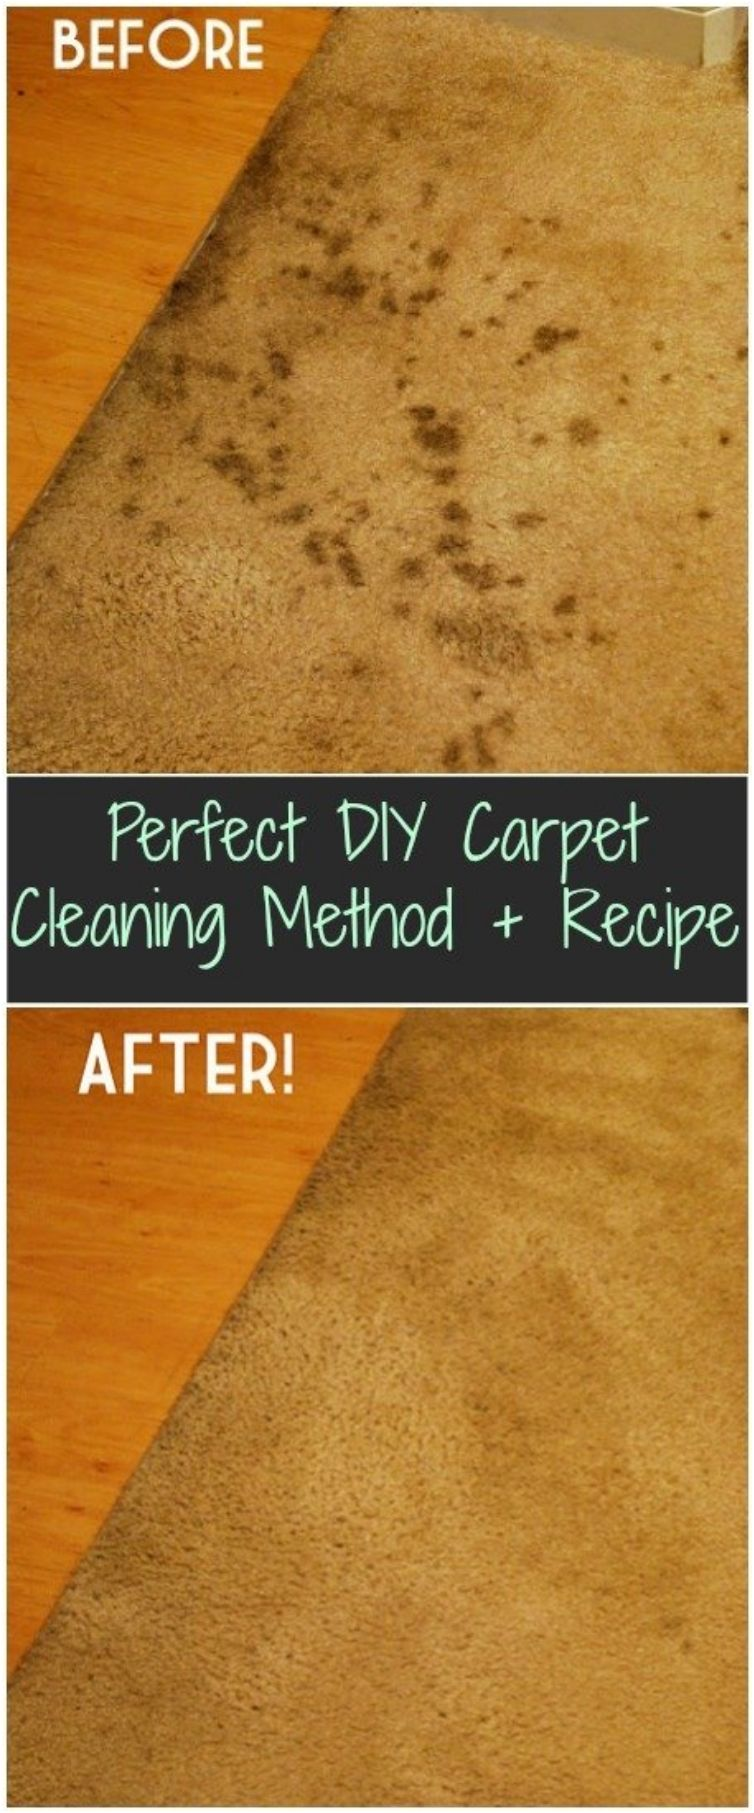 12 Carpet Cleaning Tips & Tricks Every Mother Needs To Know